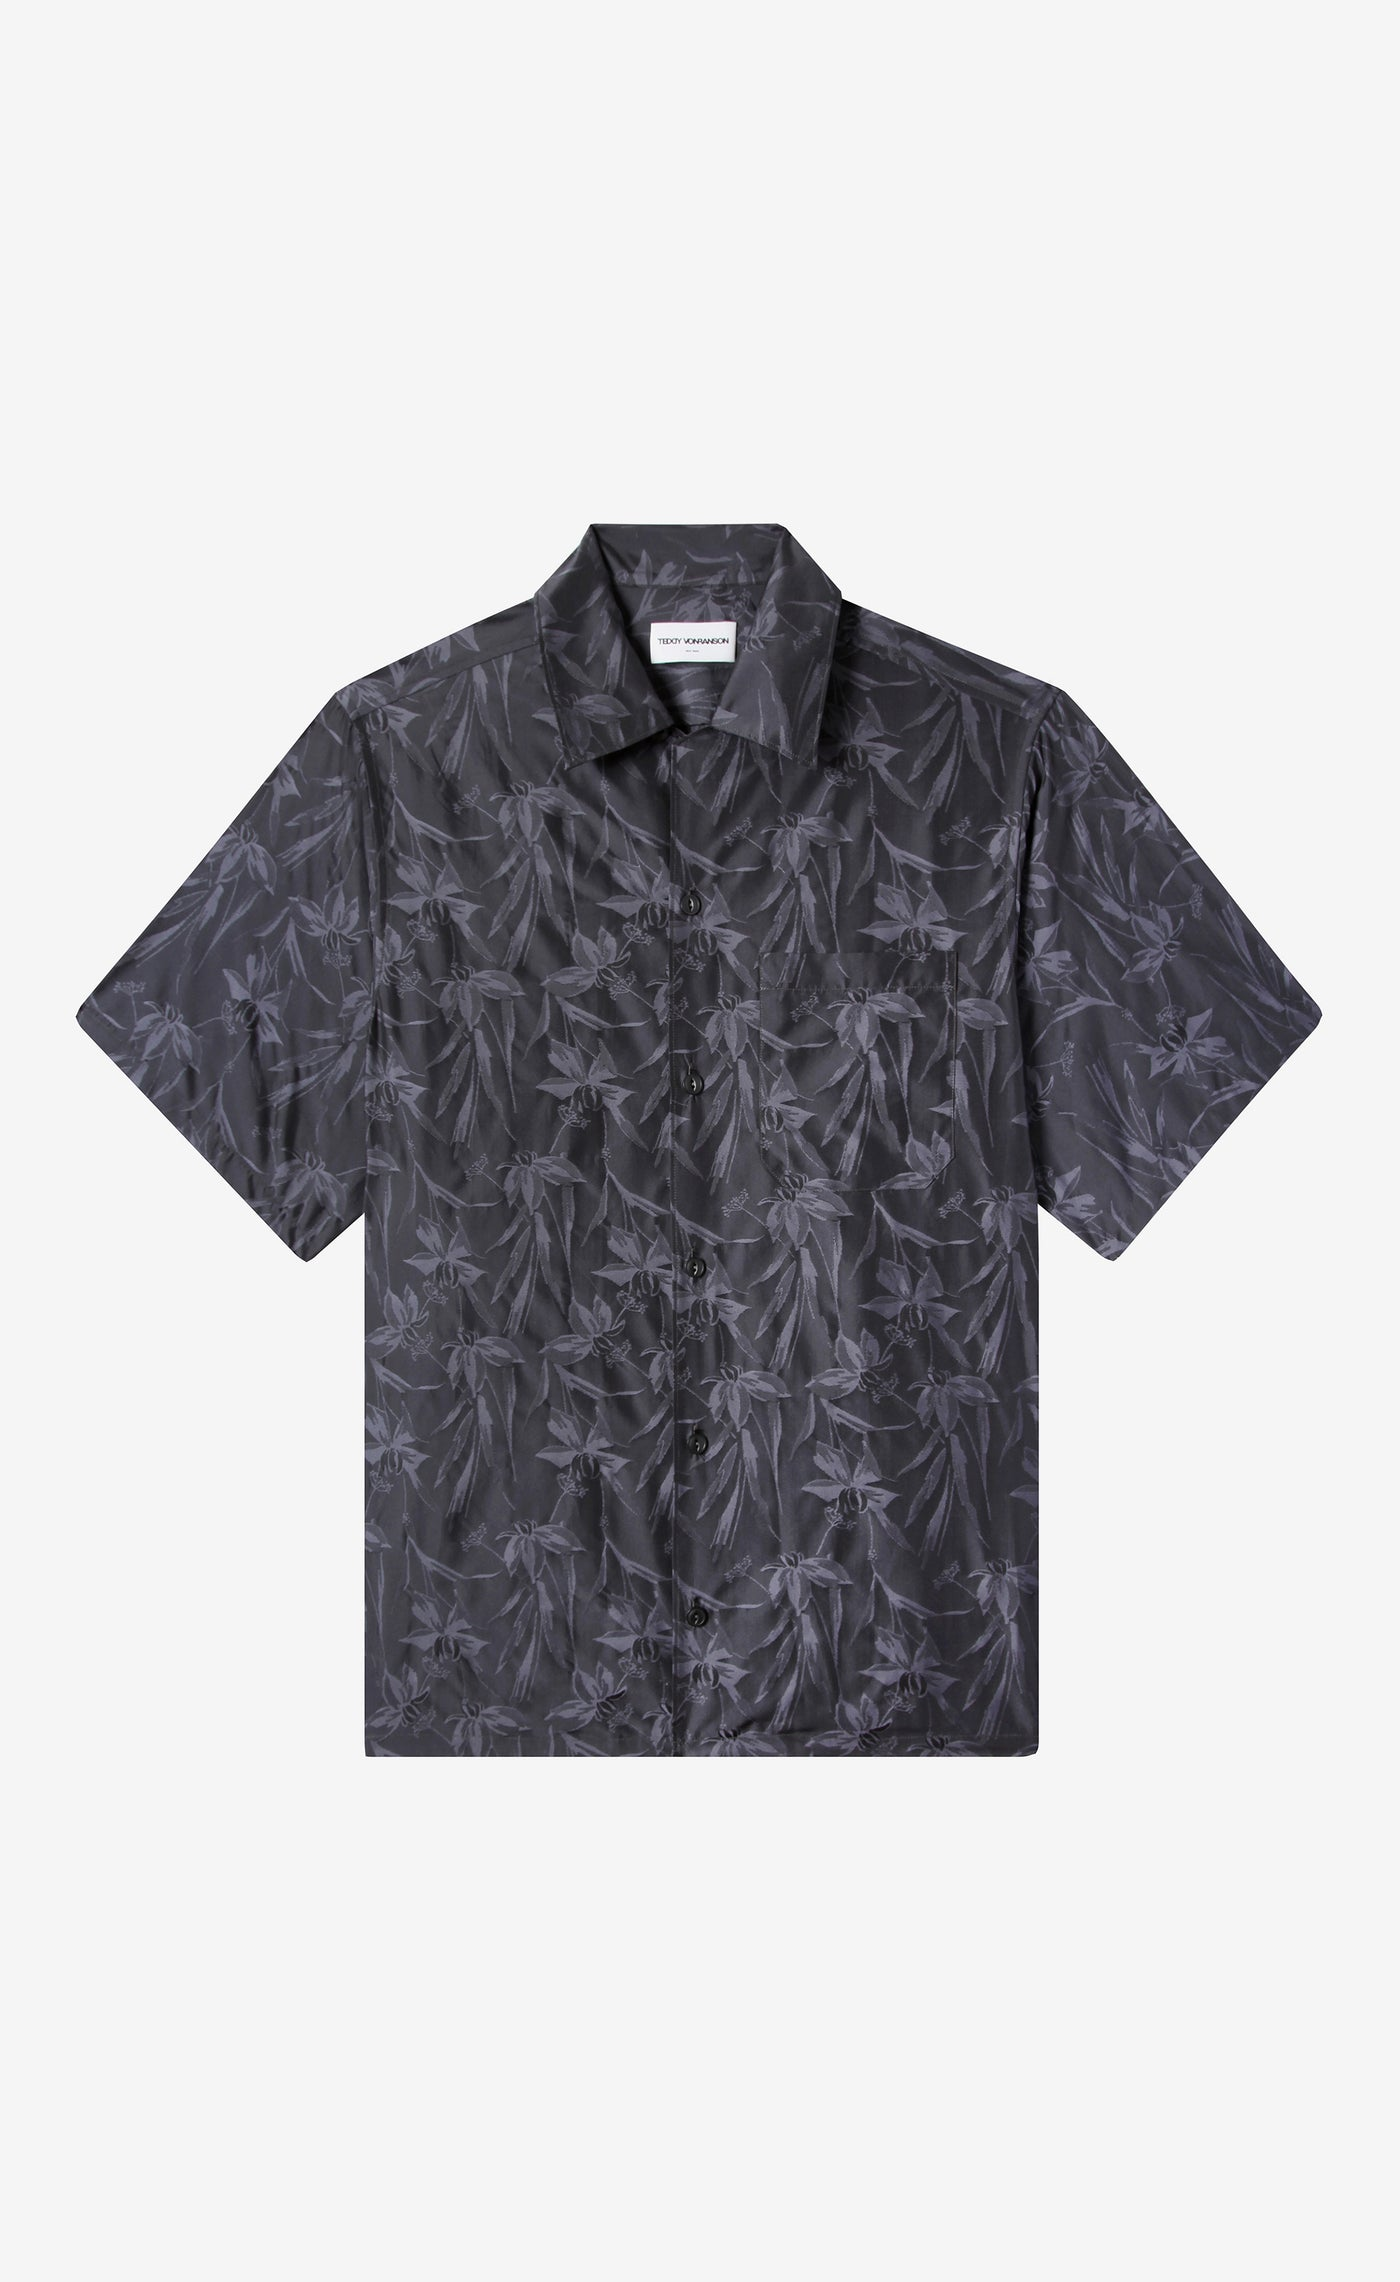 Matthew Camp Shirt